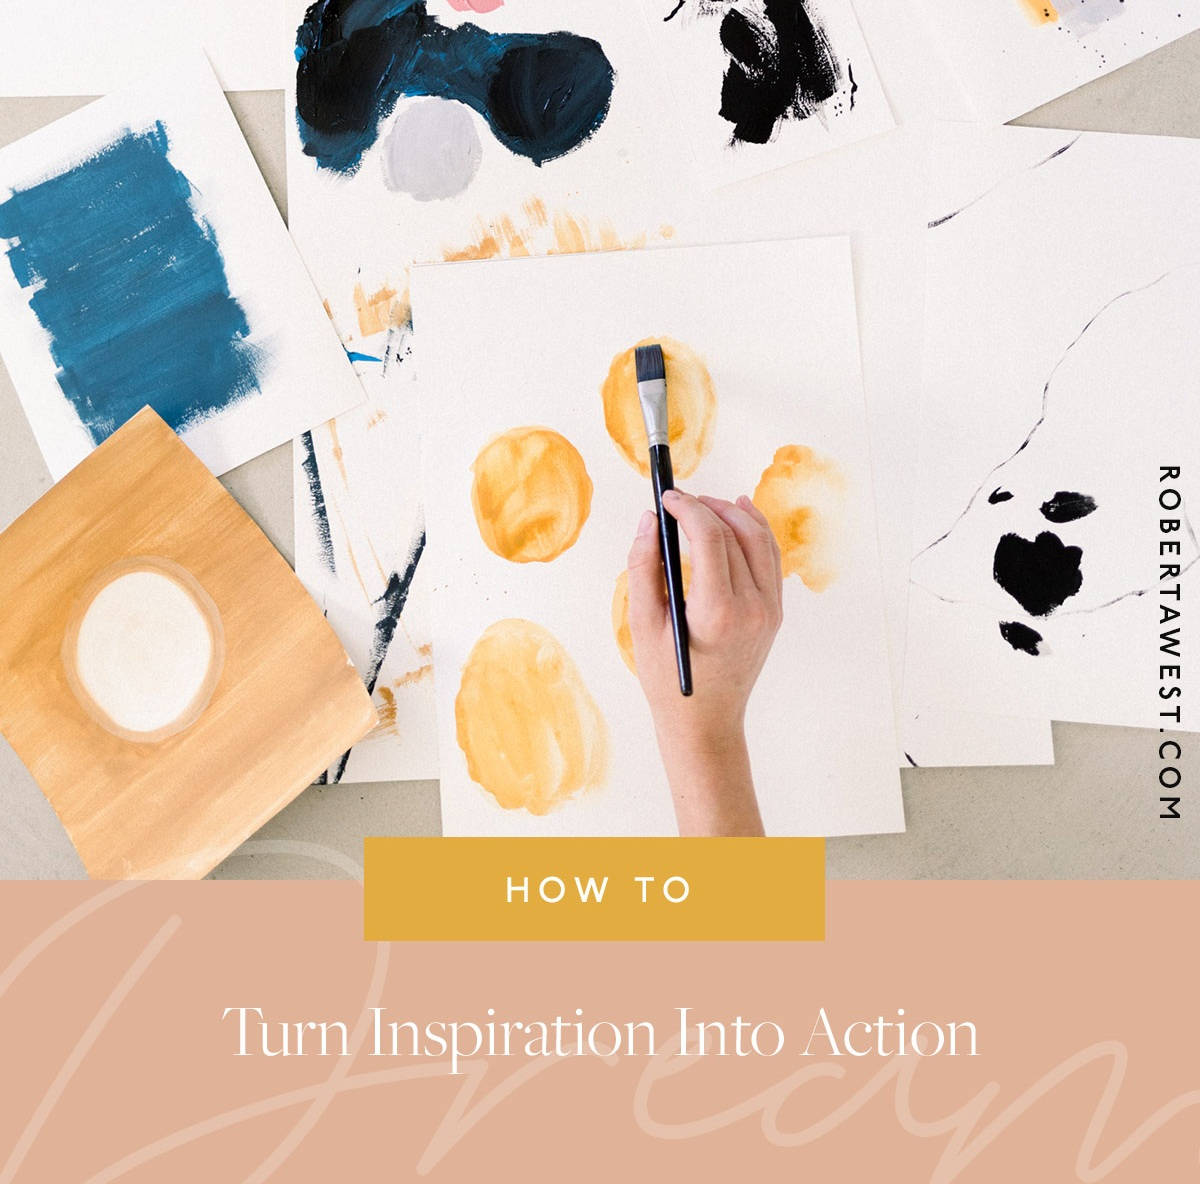 Turn+inspiration+into+action+with+this+how+to+video.+RobertaWest.jpg